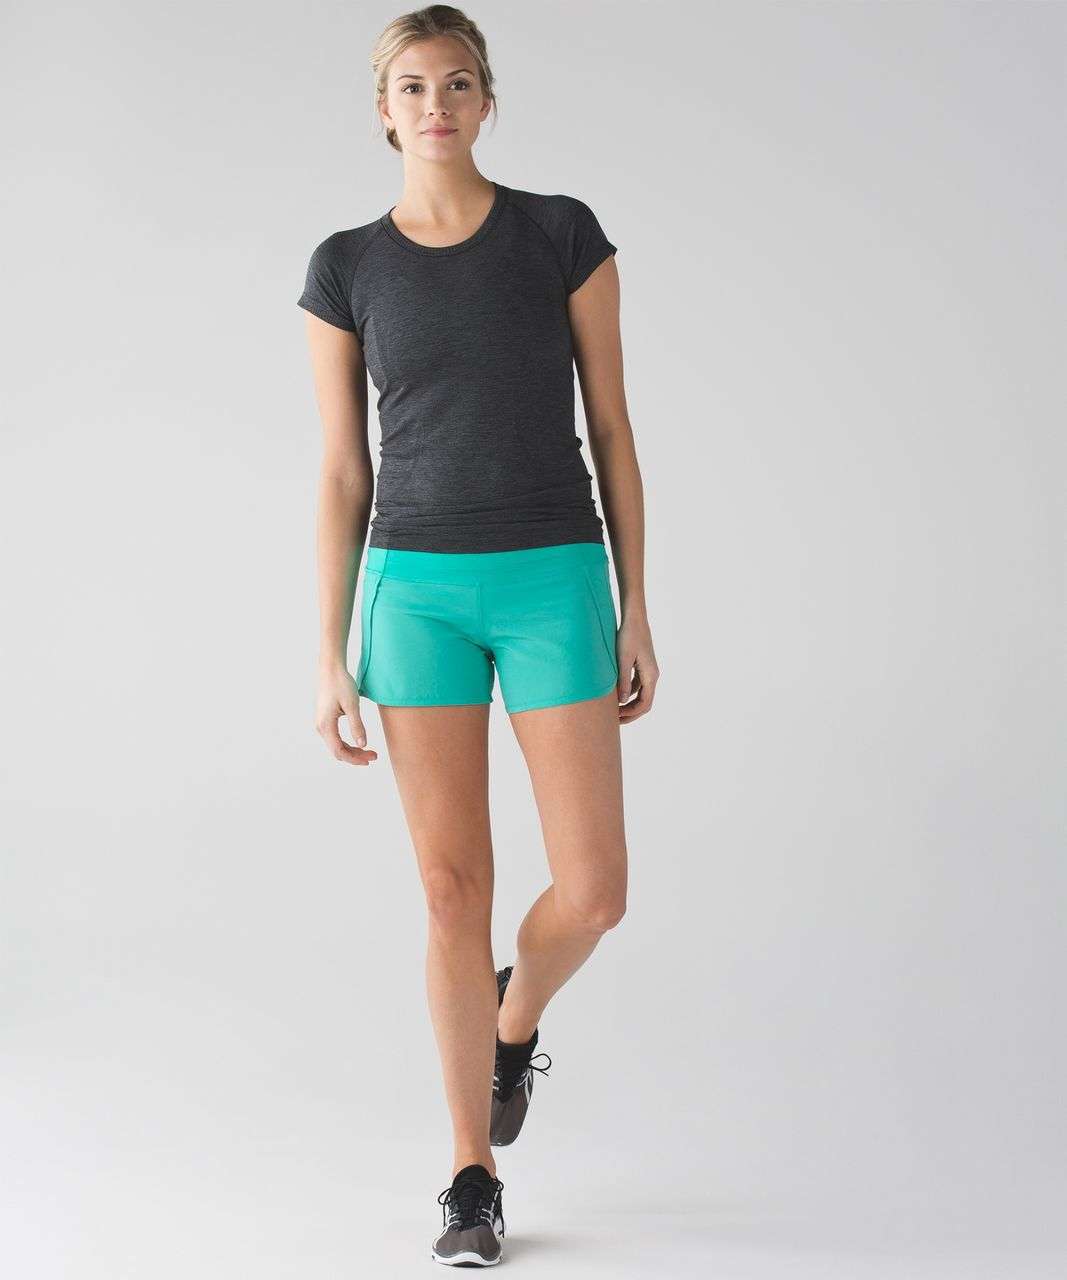 Lululemon Run Times Short *4-way Stretch - Bali Breeze